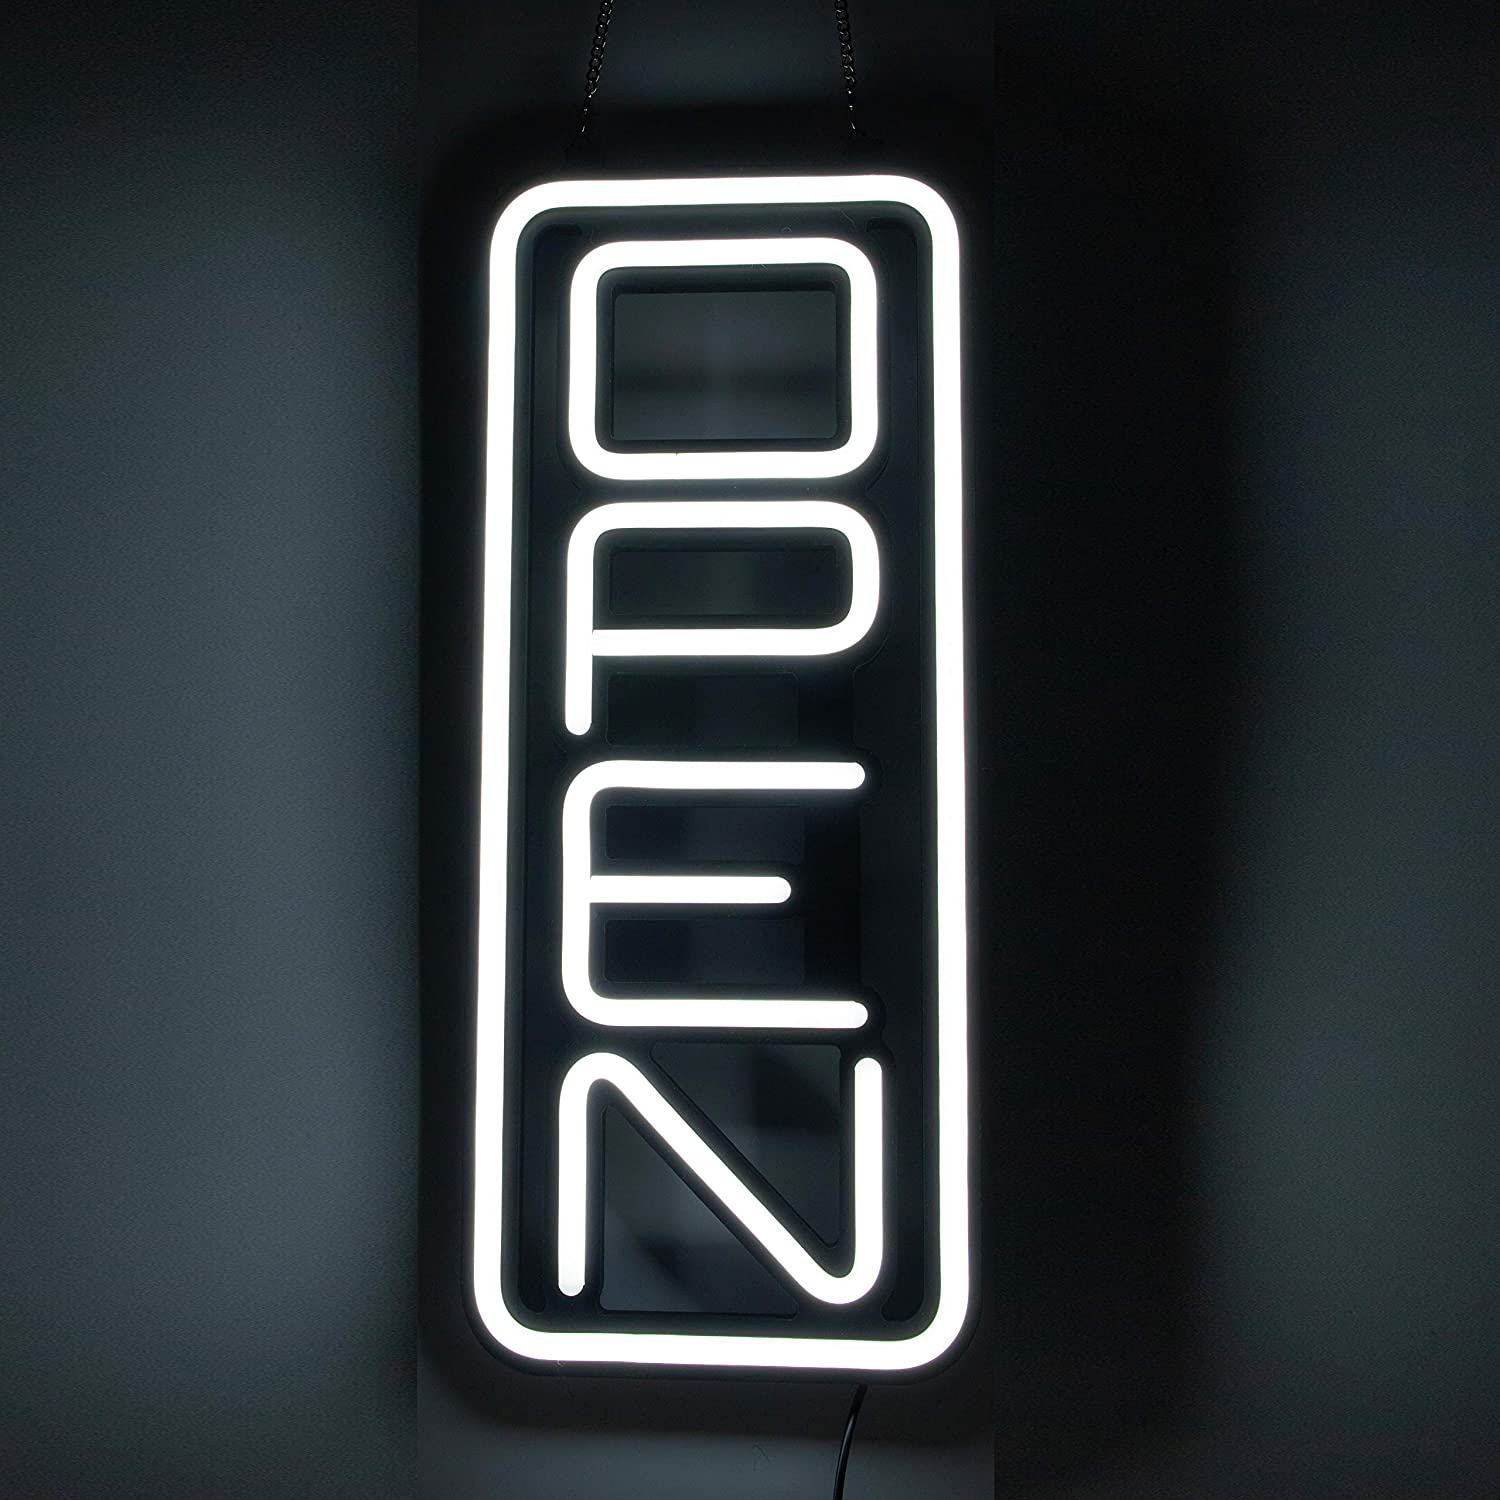 Includes Extra Will Return Clock Sign with Hours Innovative NEON Style LED Light Technology to Attract Customers Super Bright Open Signs for Business Vertical All White LED Open Sign